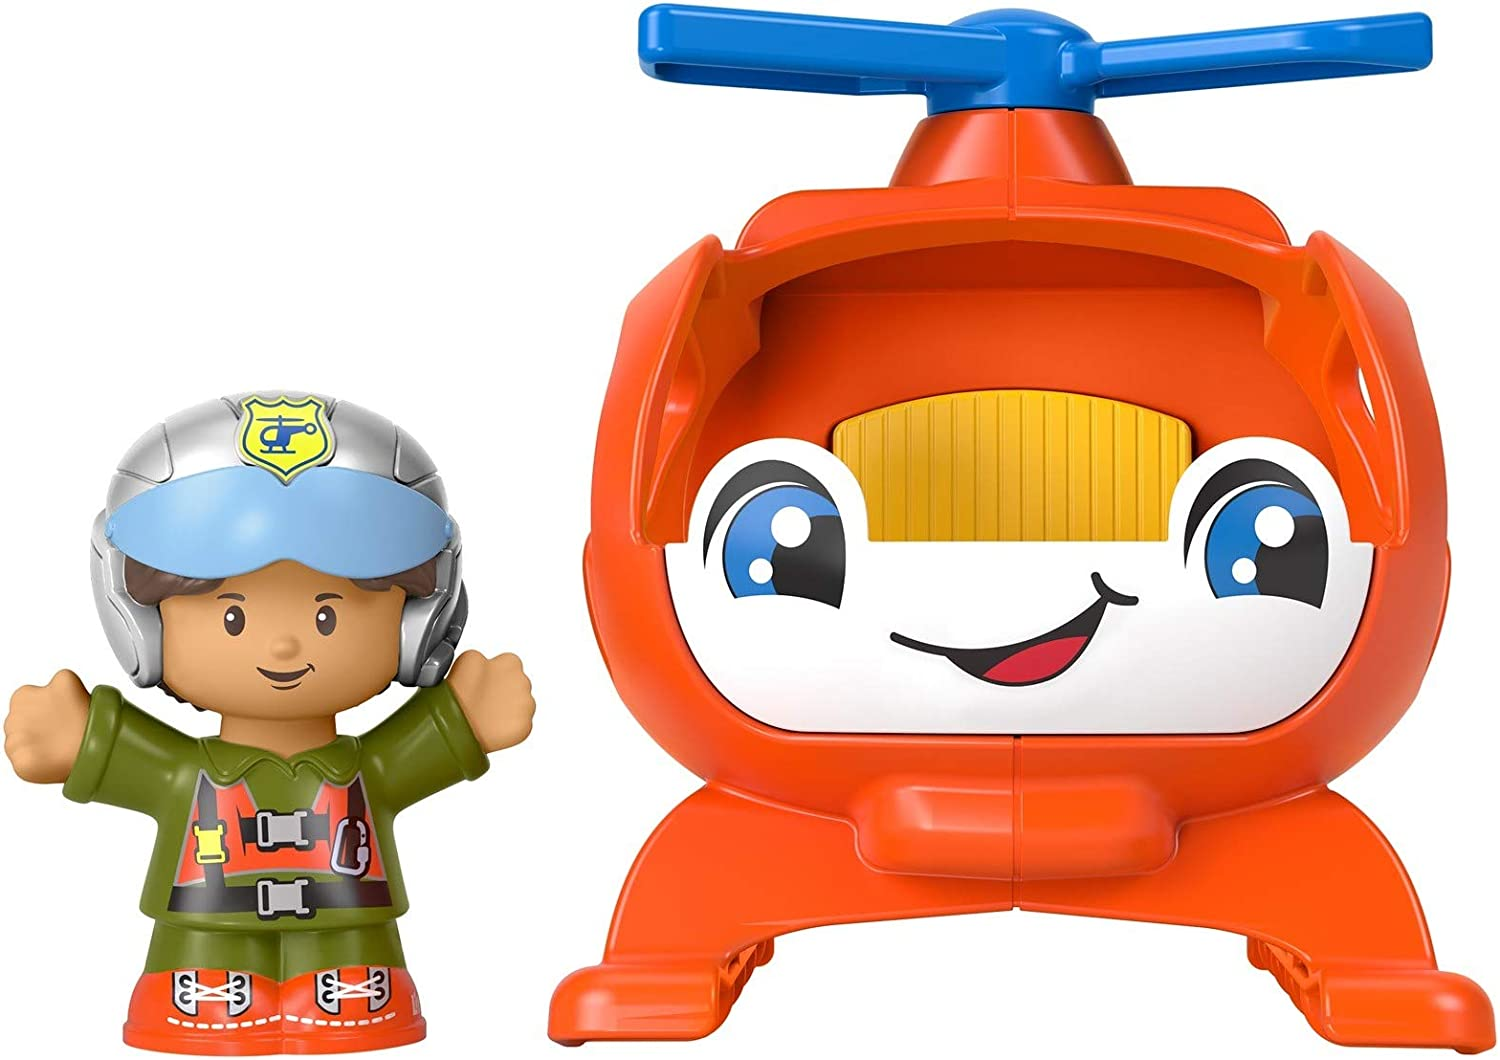 Toy Vehicle and Figure Set for Toddlers and Preschool Kids Ages 1-5 Years Fisher-Price Little People Helicopter